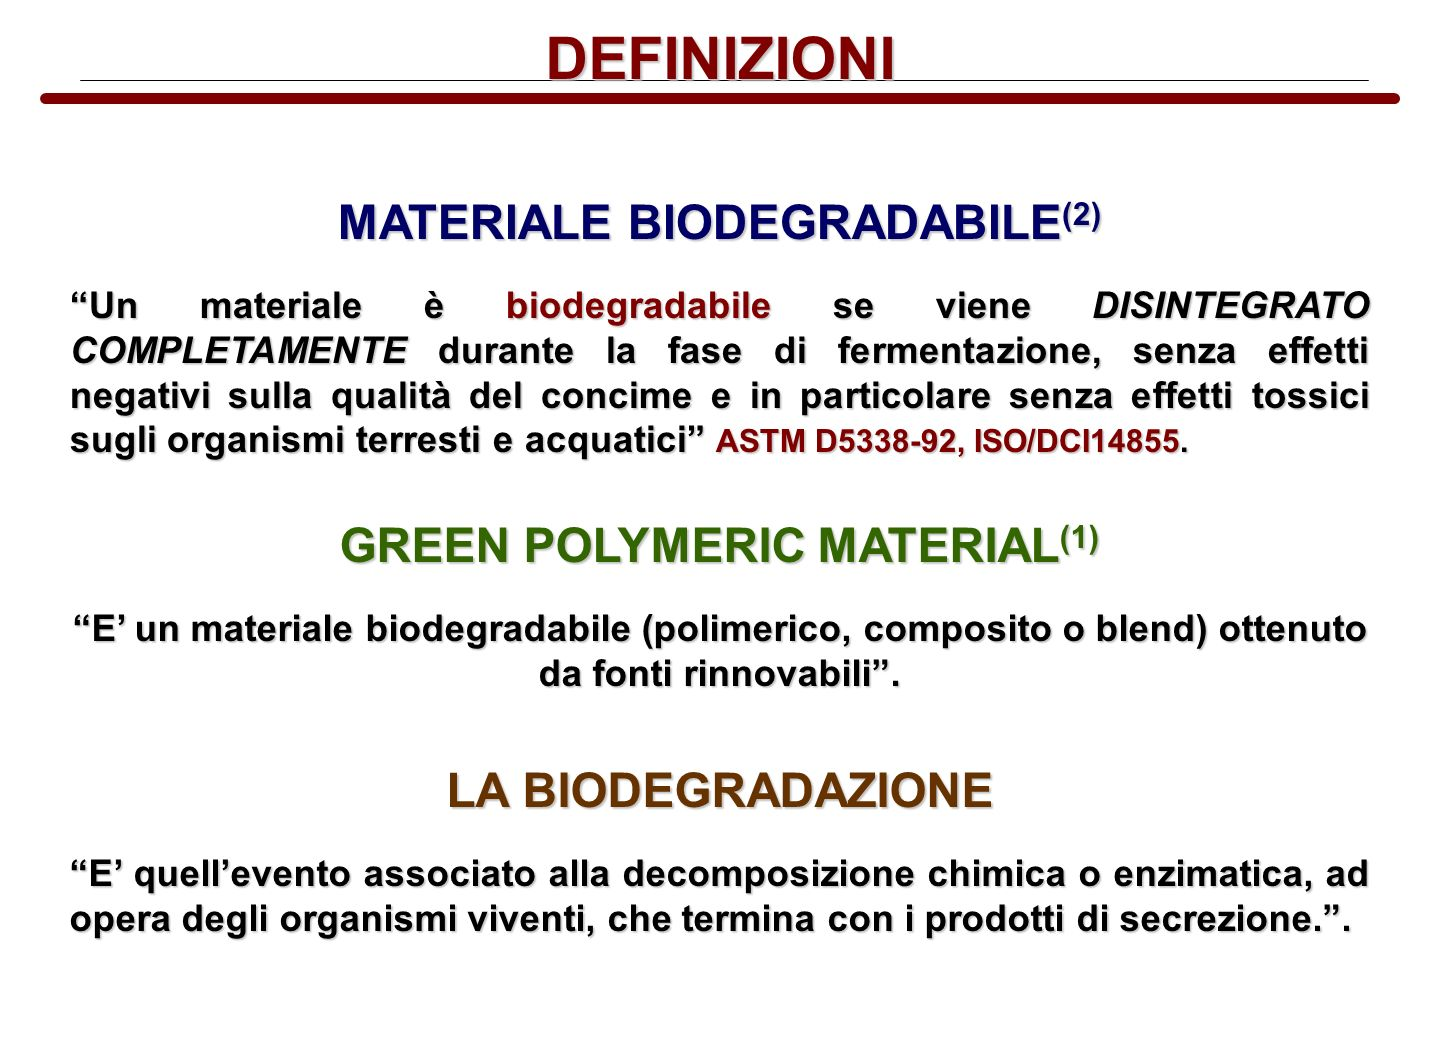 MATERIALE BIODEGRADABILE(2) GREEN POLYMERIC MATERIAL(1)